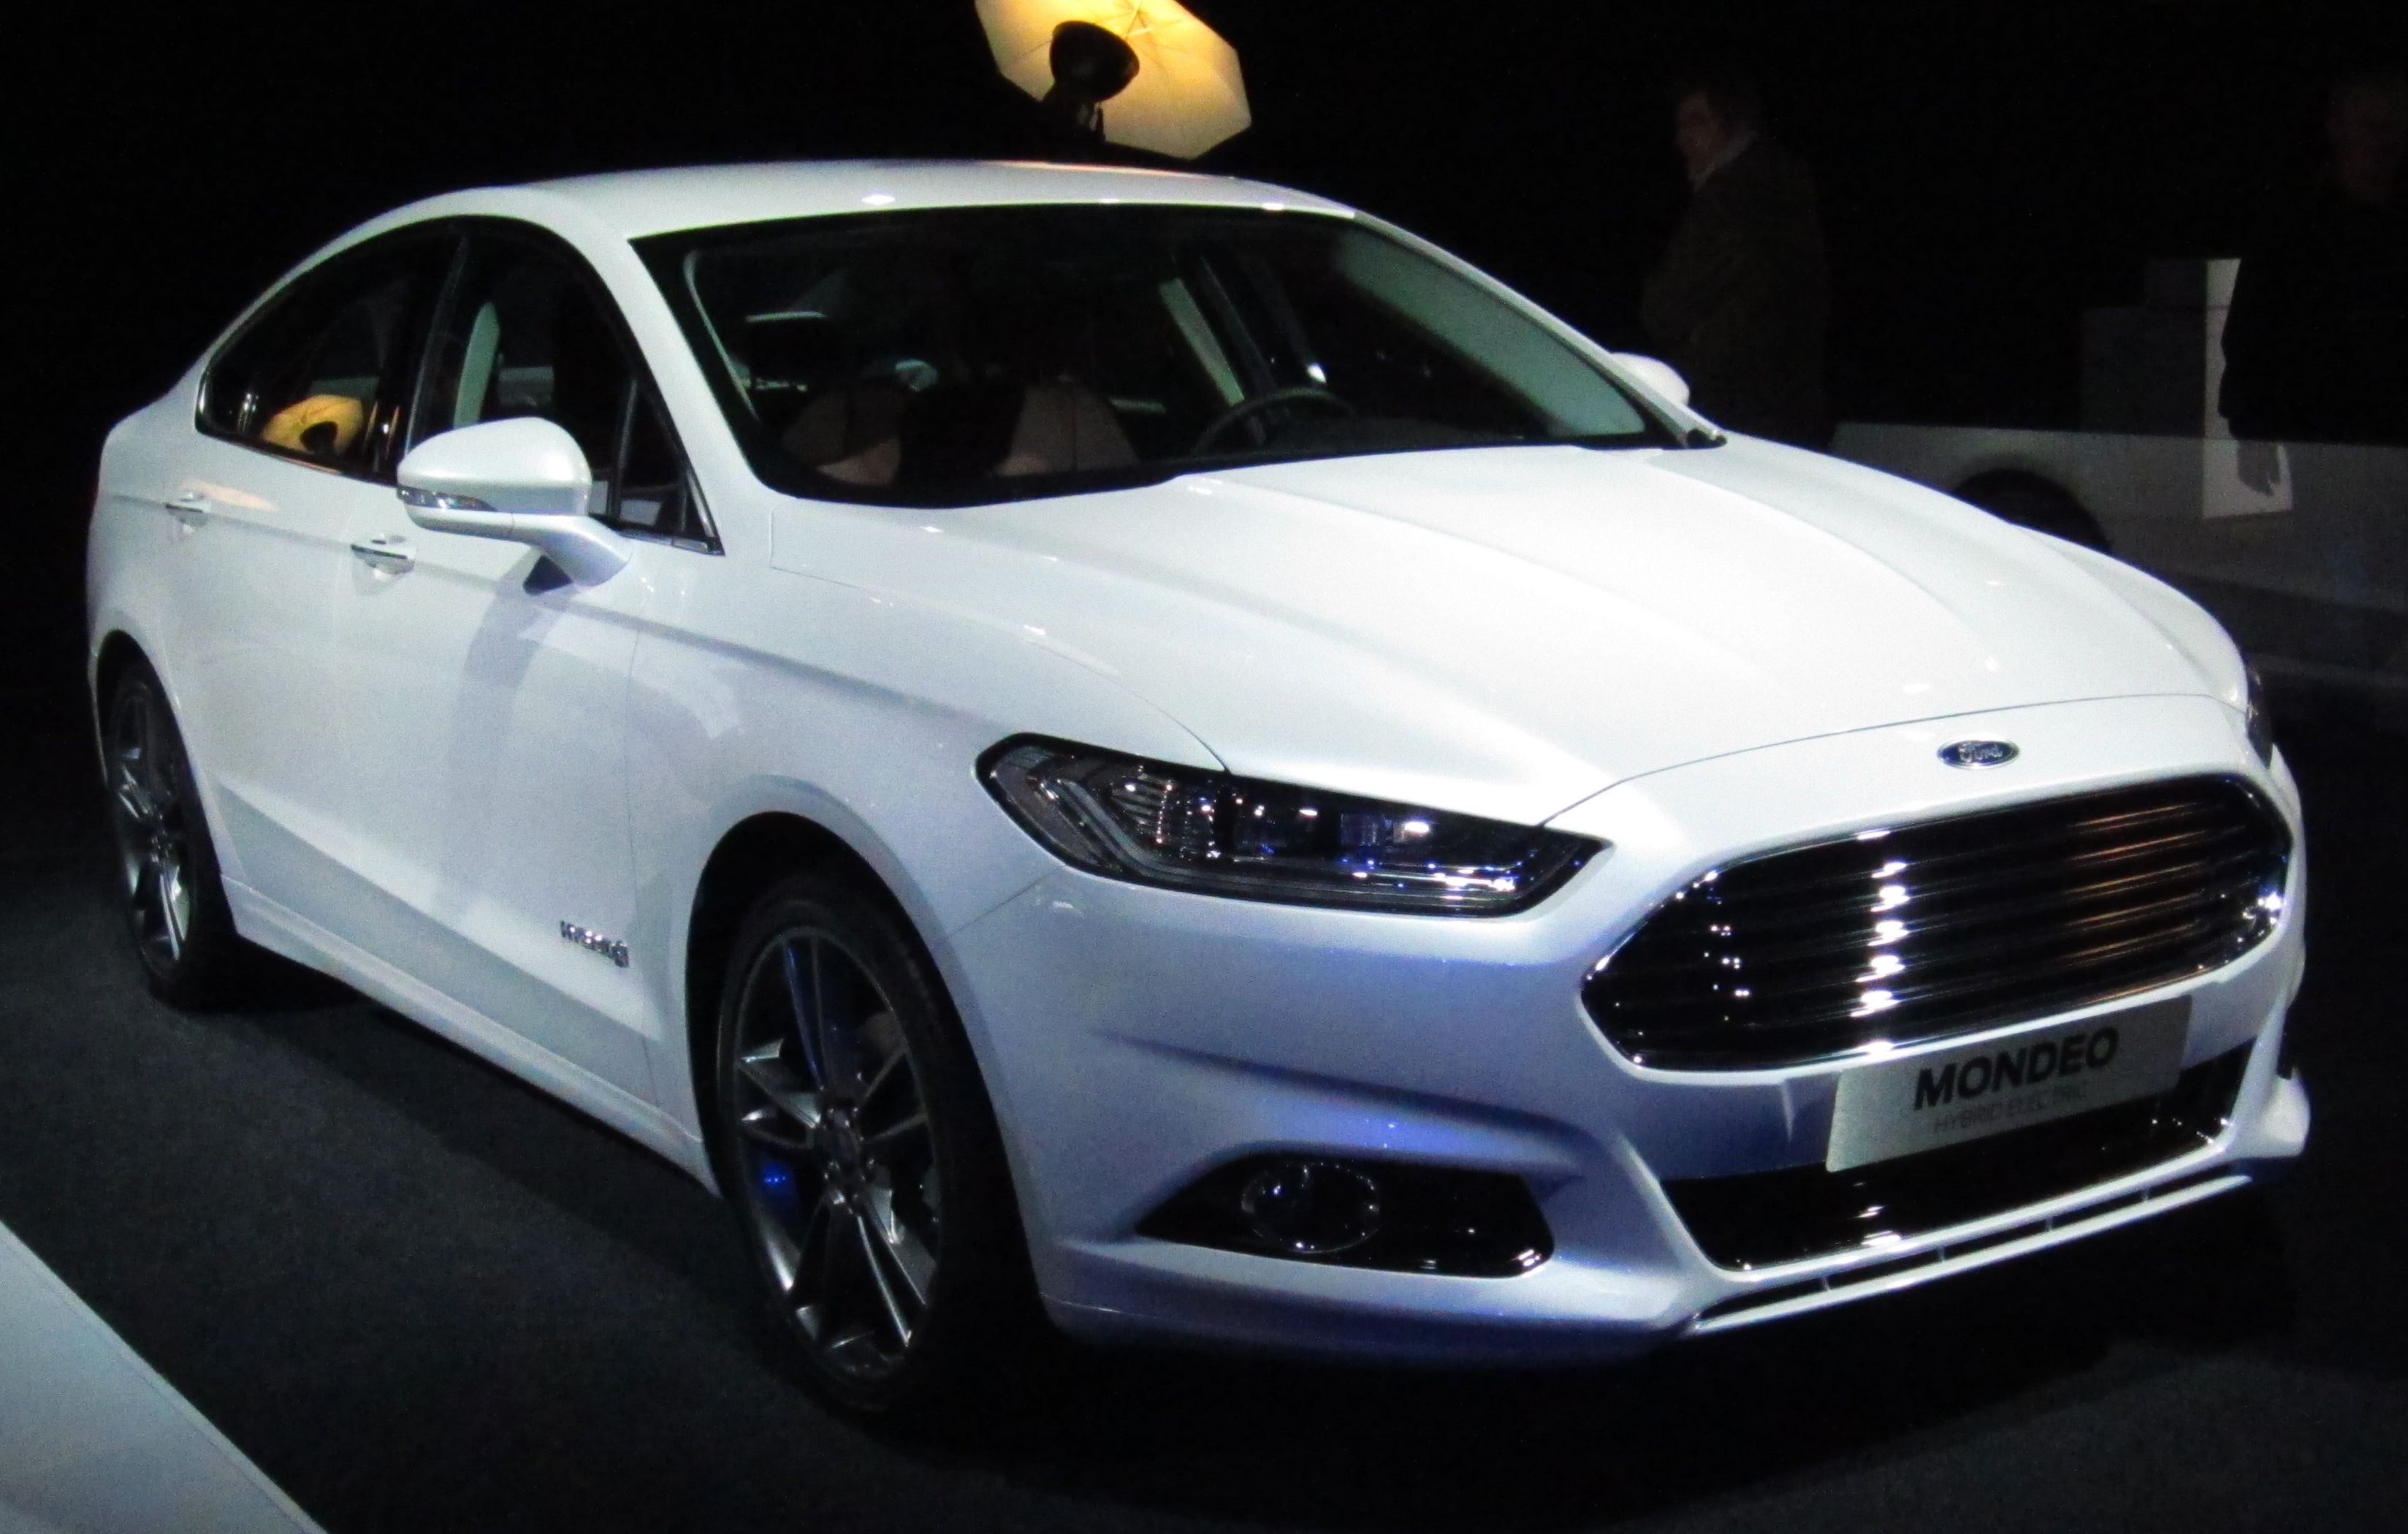 The Next Generation Ford Mondeo Confirmed For Europe